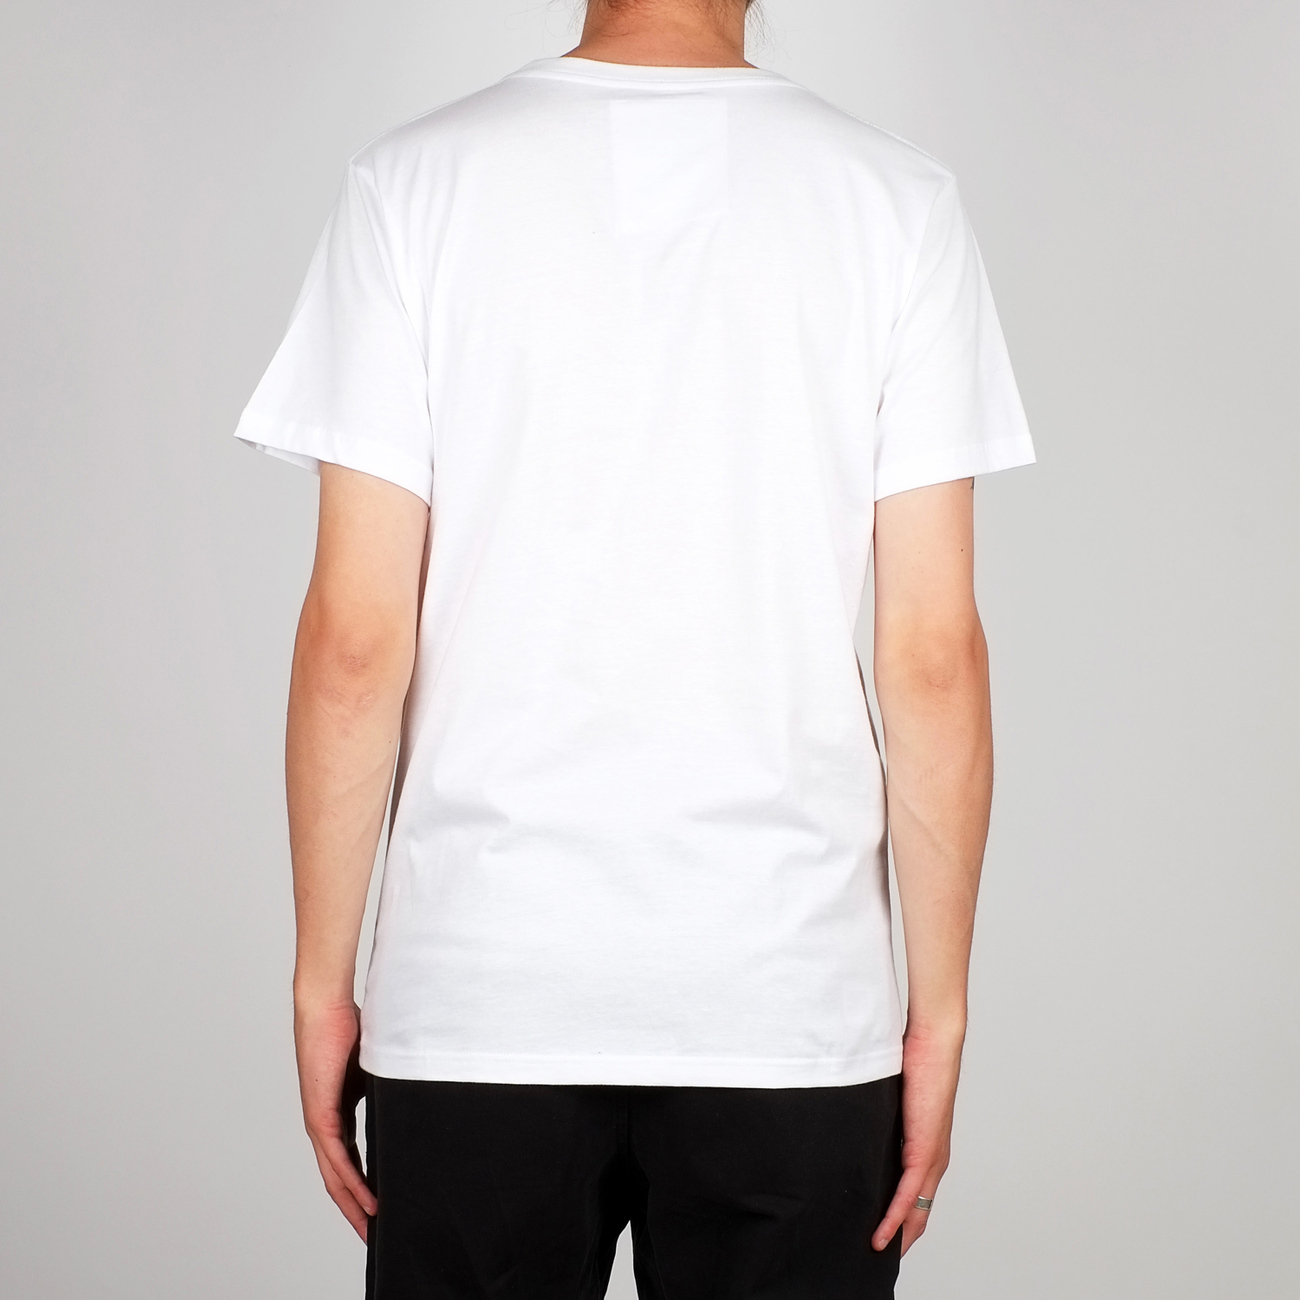 T-shirt Stockholm Bike Box White